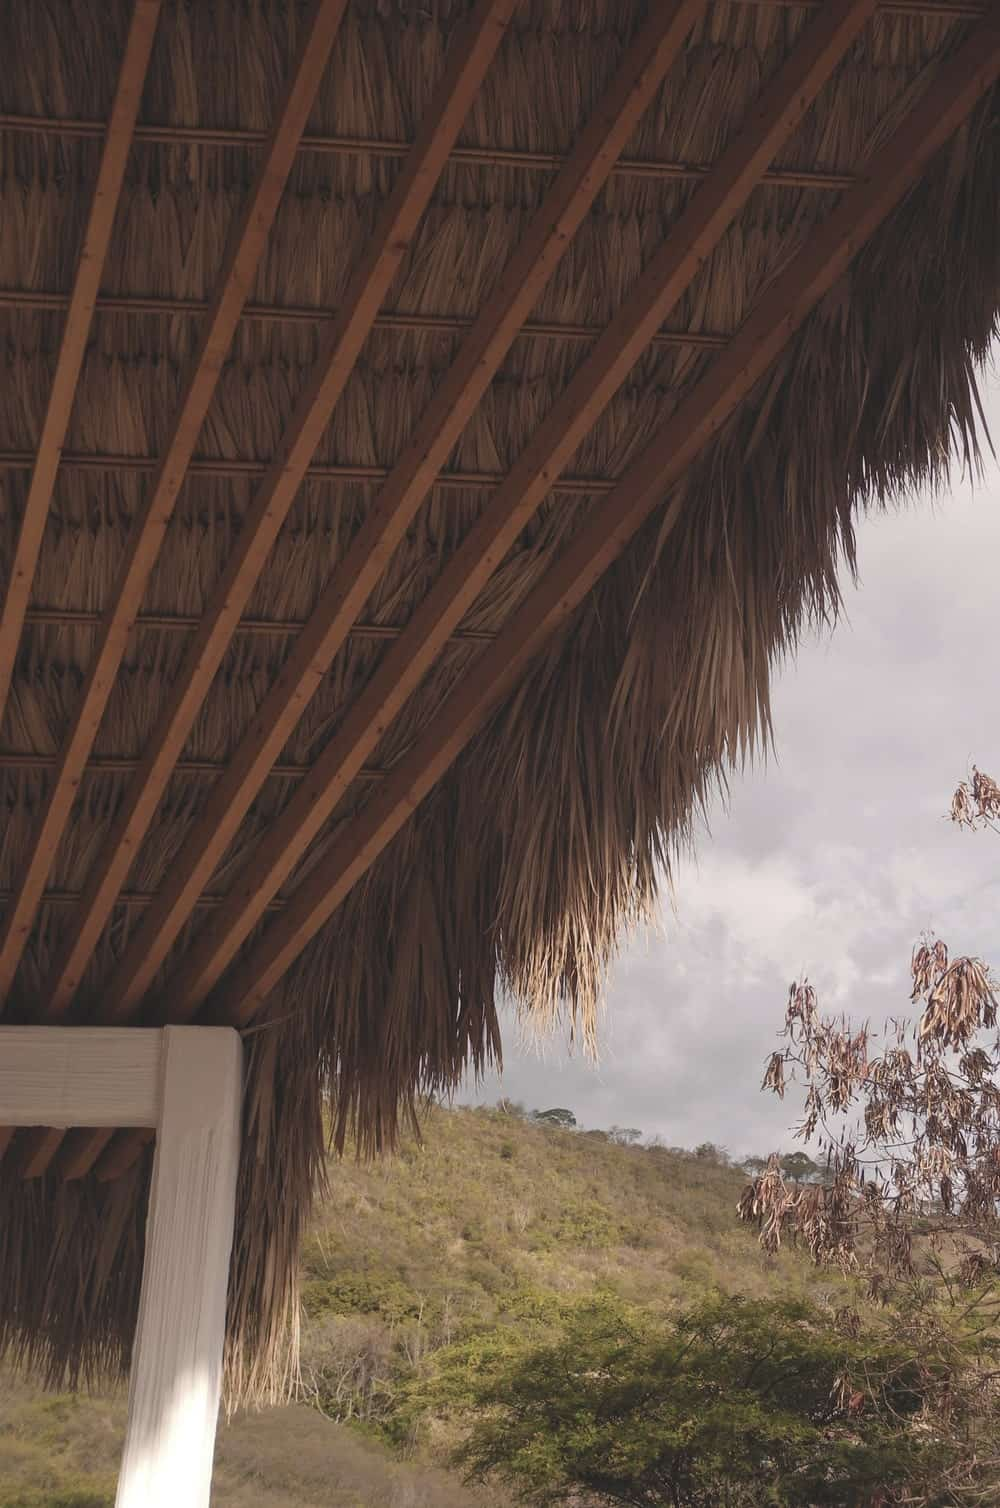 This is a close look at the palm and wood clap ceiling detail of the house.